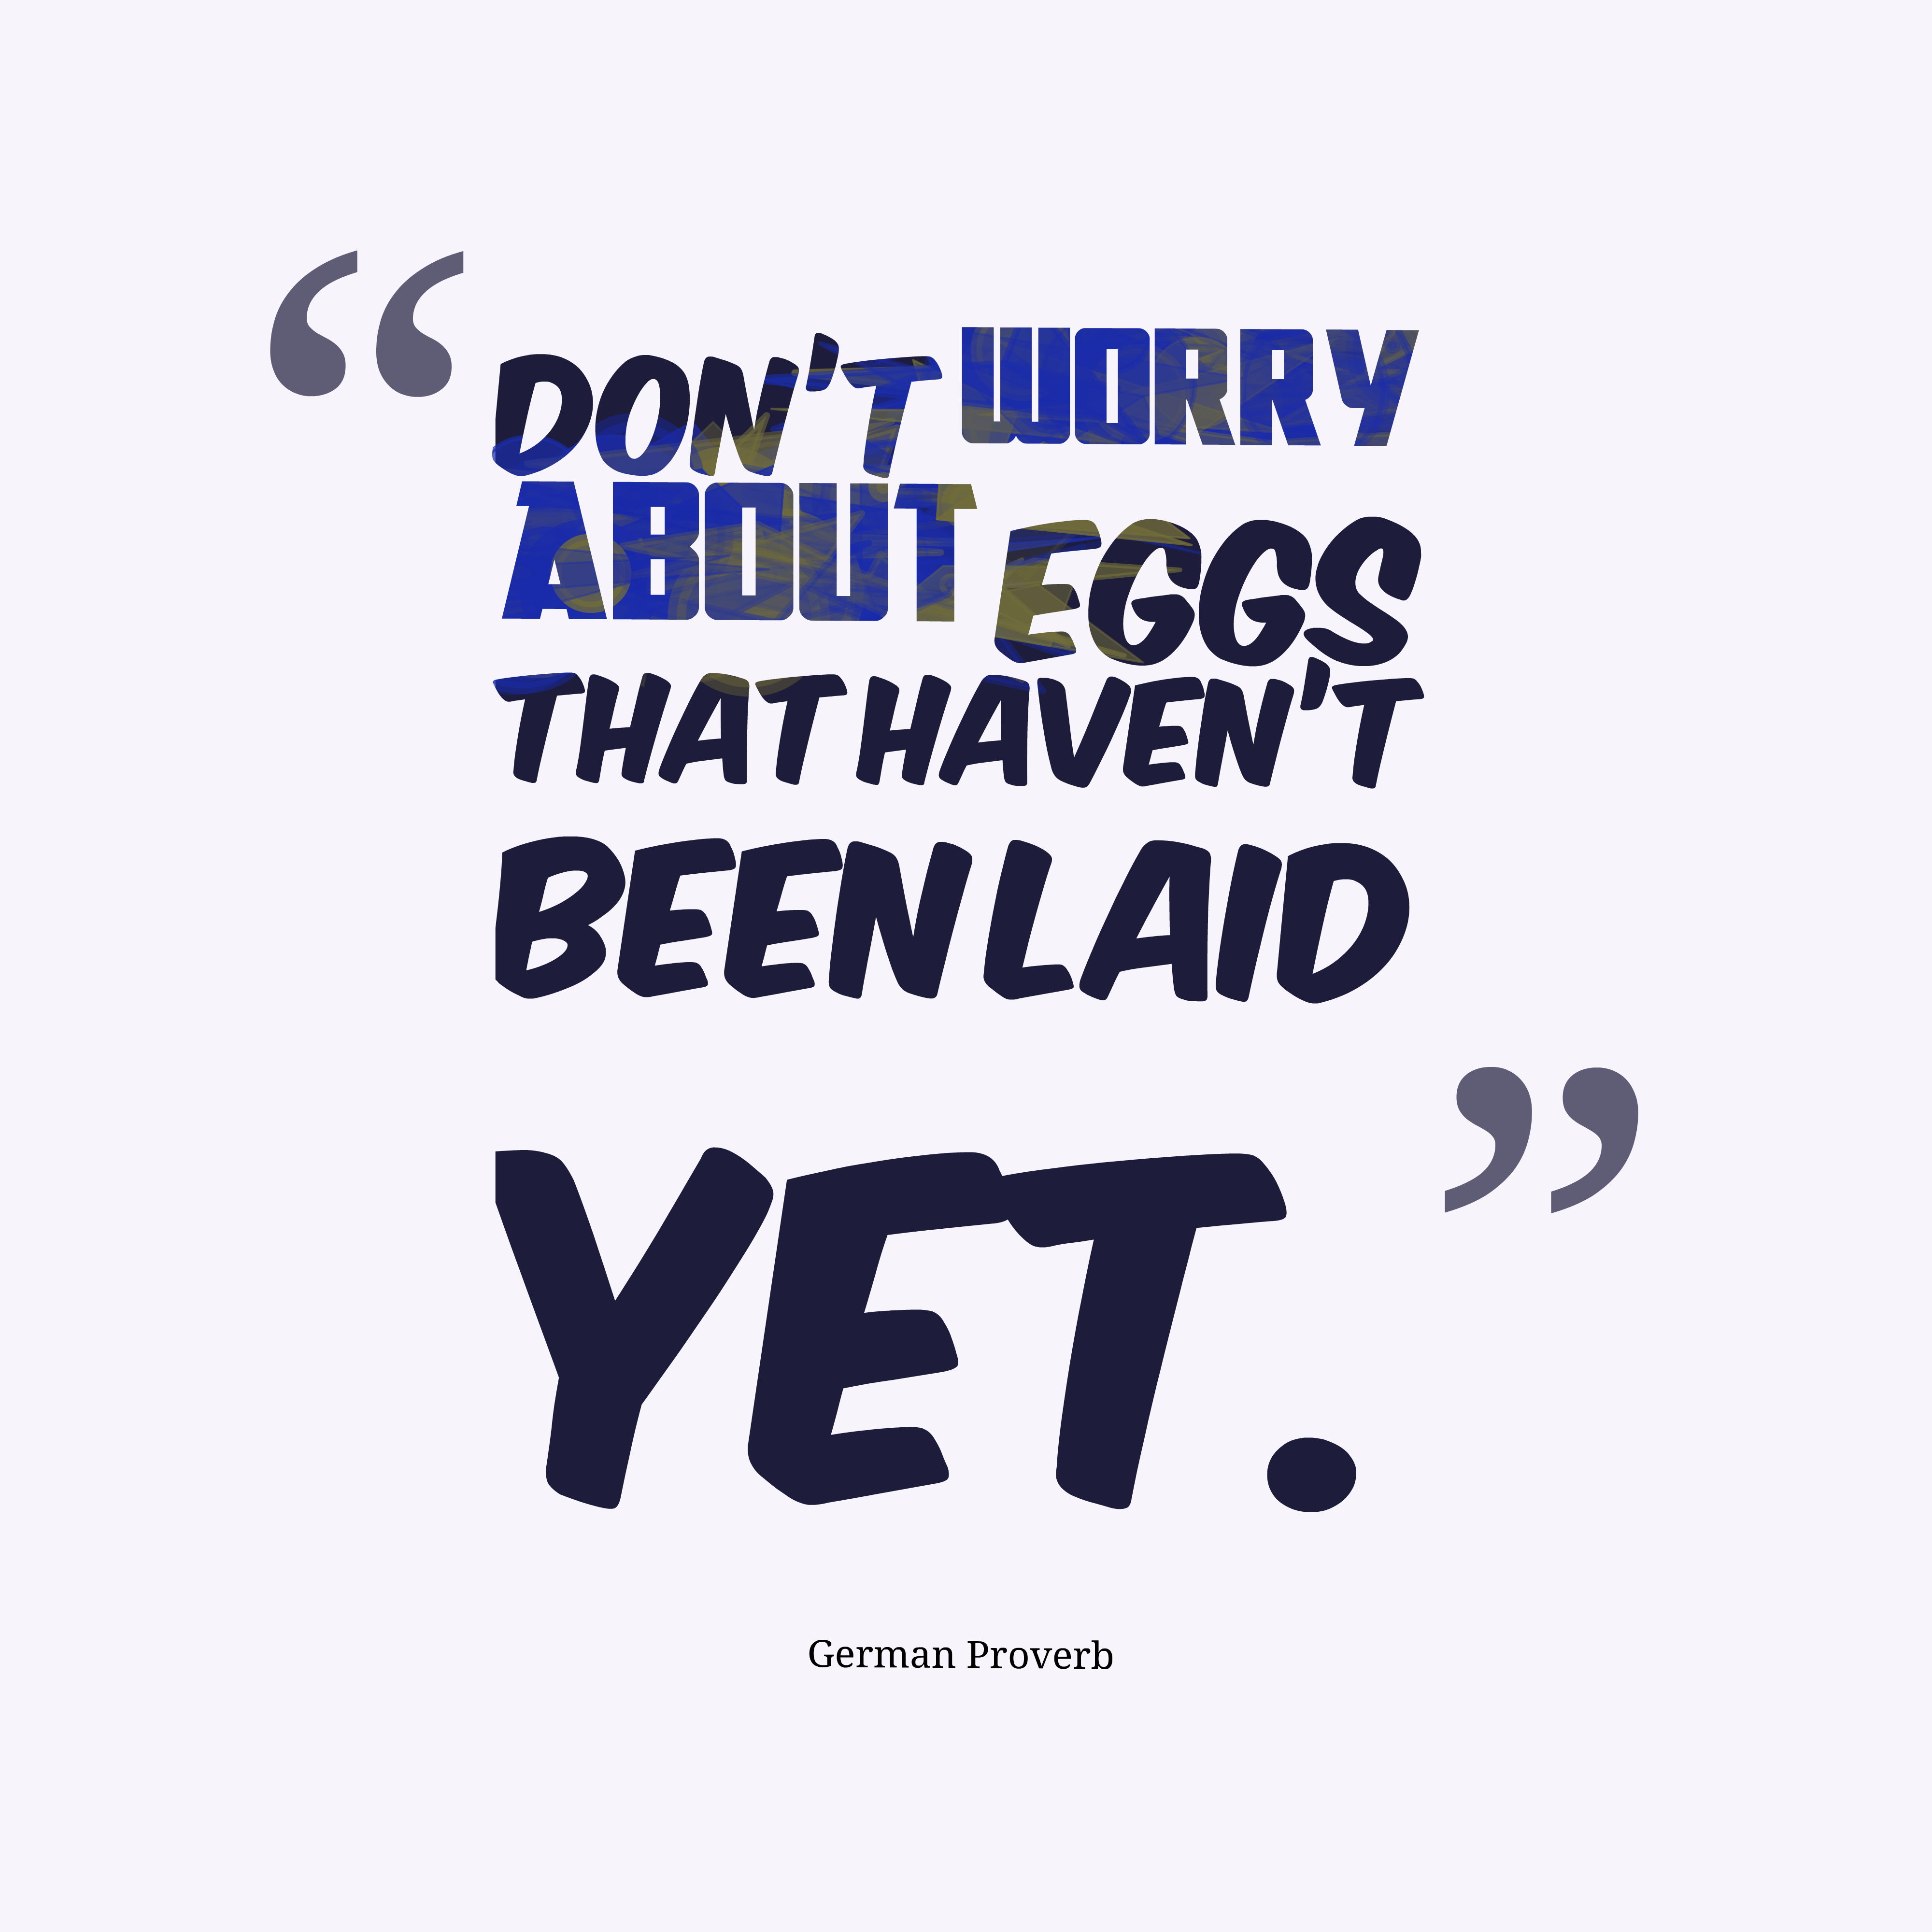 Quotes image of Don't worry about eggs that haven't been laid yet.